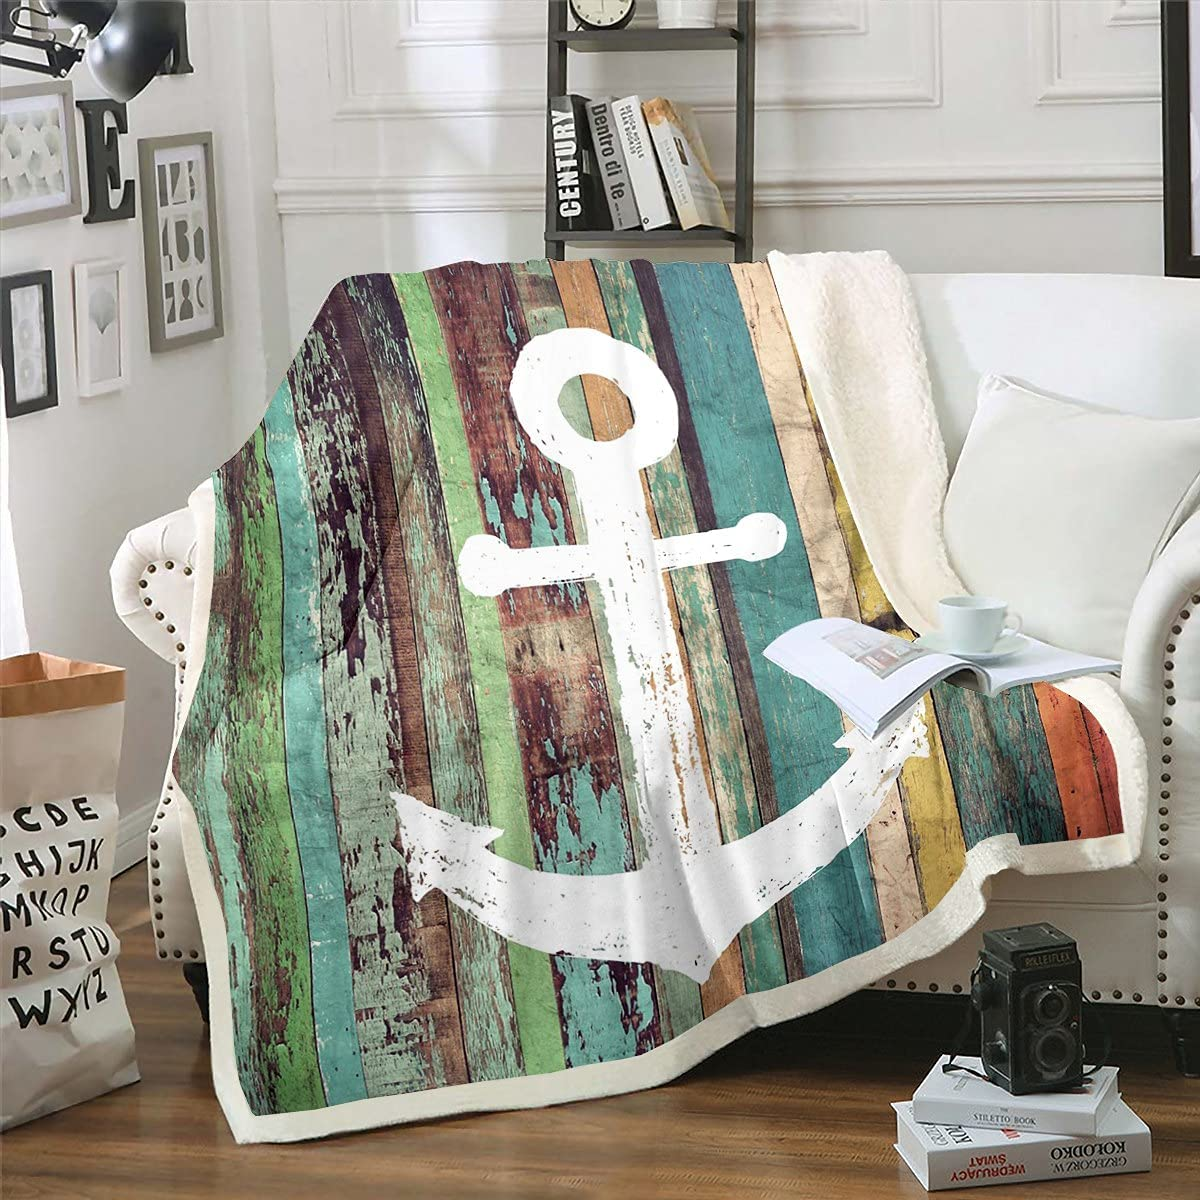 Anchor Bed Blanket Colorful Vintage Wooden Planks Art Throw Blanket for Teens Youth,Grunge Rustic Marine Pattern Fleece Blanket Ocean Nautical Flannel Blanket Anchor Ornament Bed Chair Decor 30